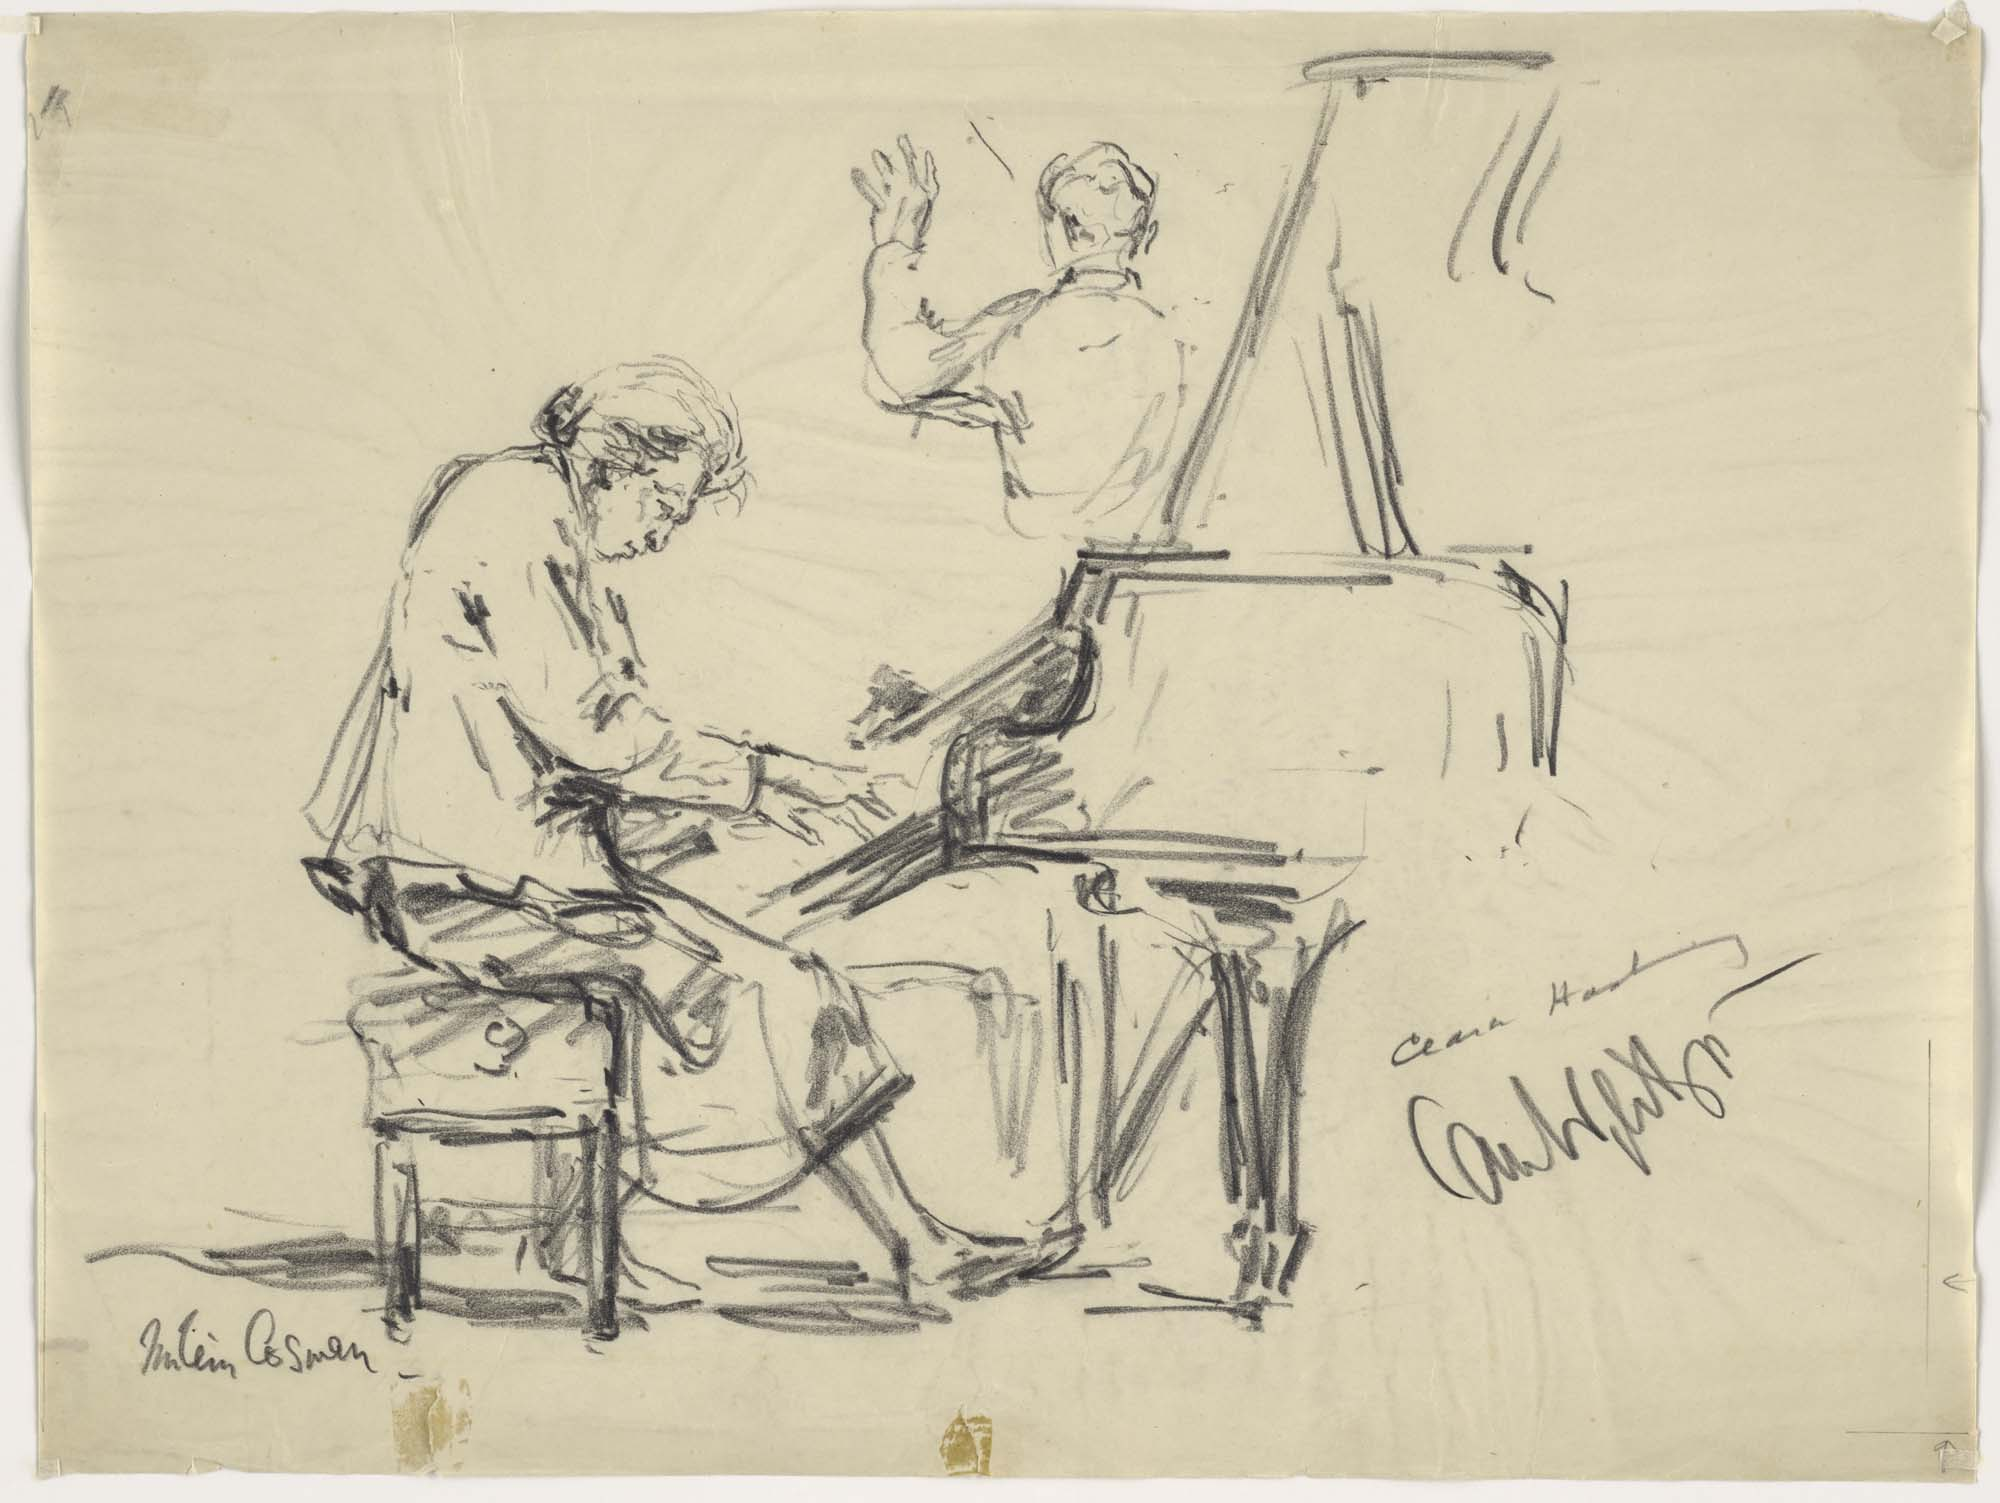 a sketch of a woman playing a grand piano